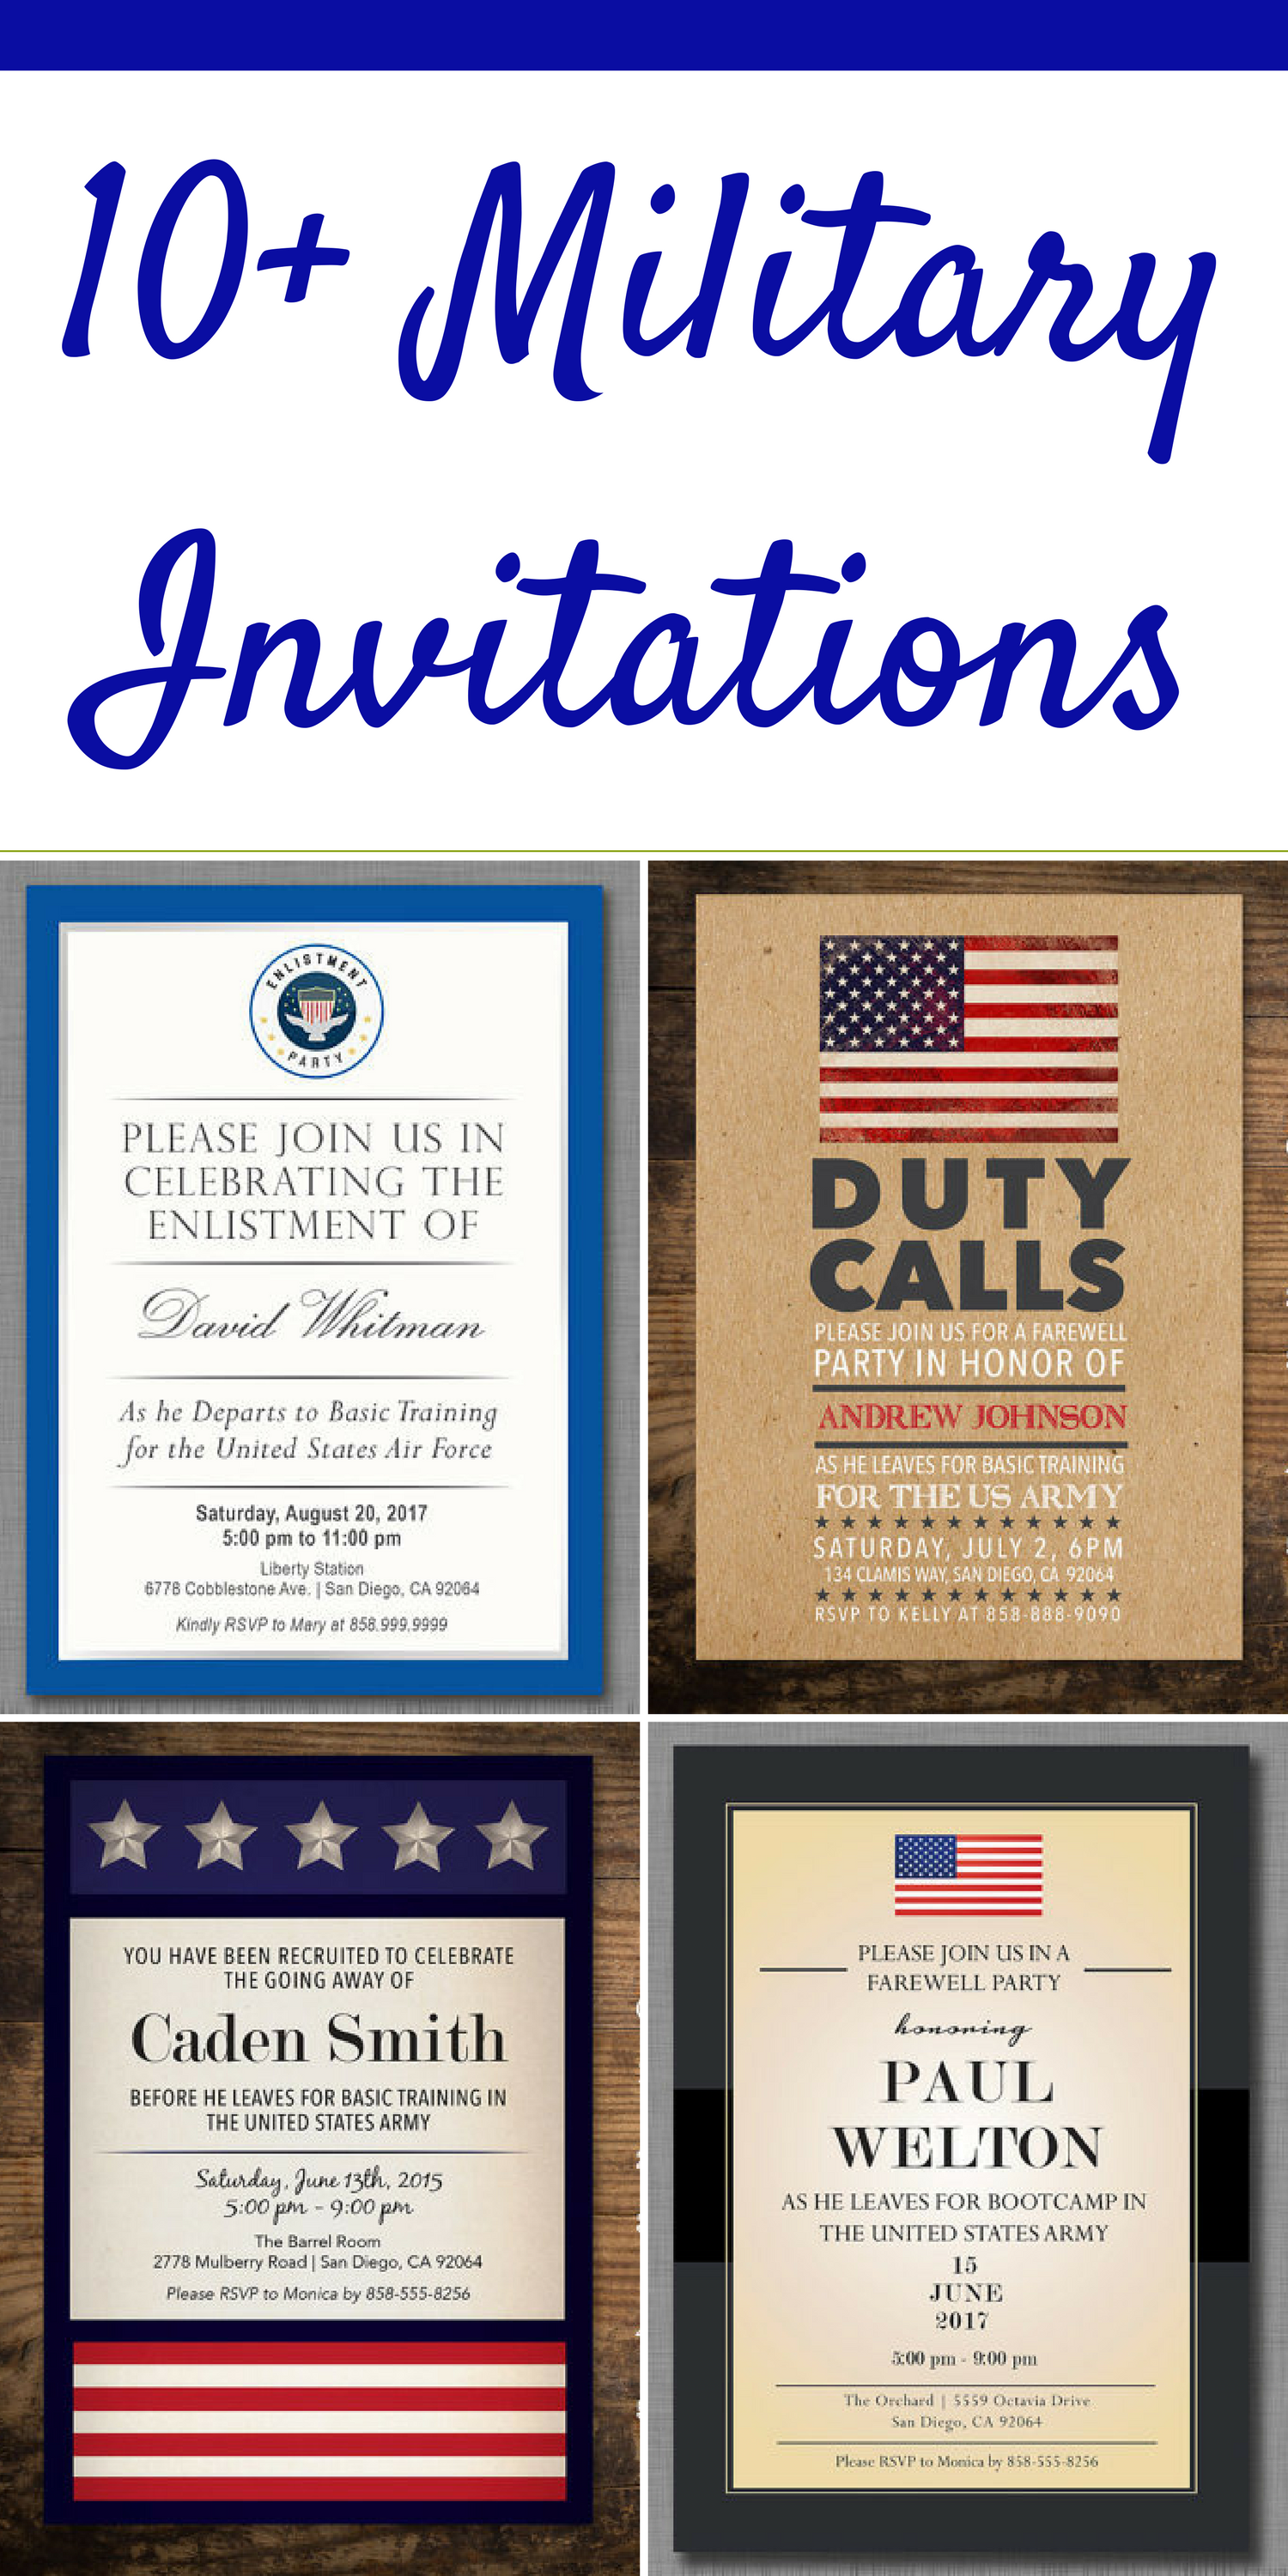 Large selection of invitations for military events! Fully customizable for events such as deployments or retirement parties! #ad #military #party #deployment #retirement